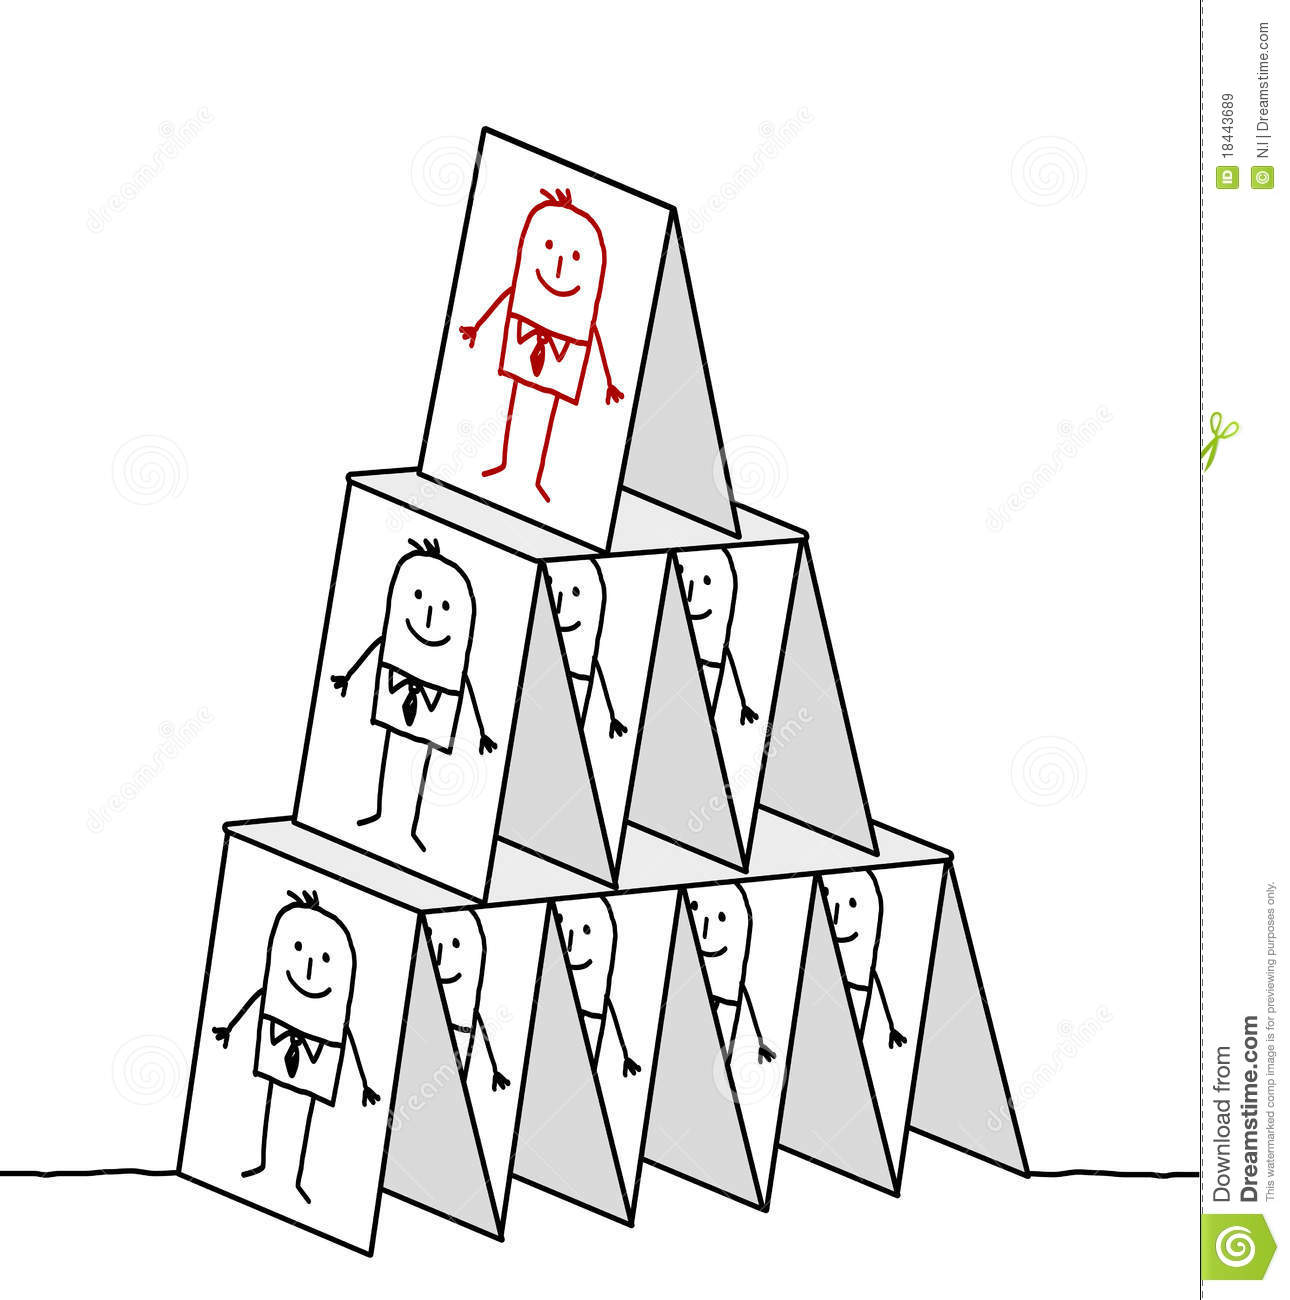 Leadership Amp Cards Pyramid Royalty Free Stock Images